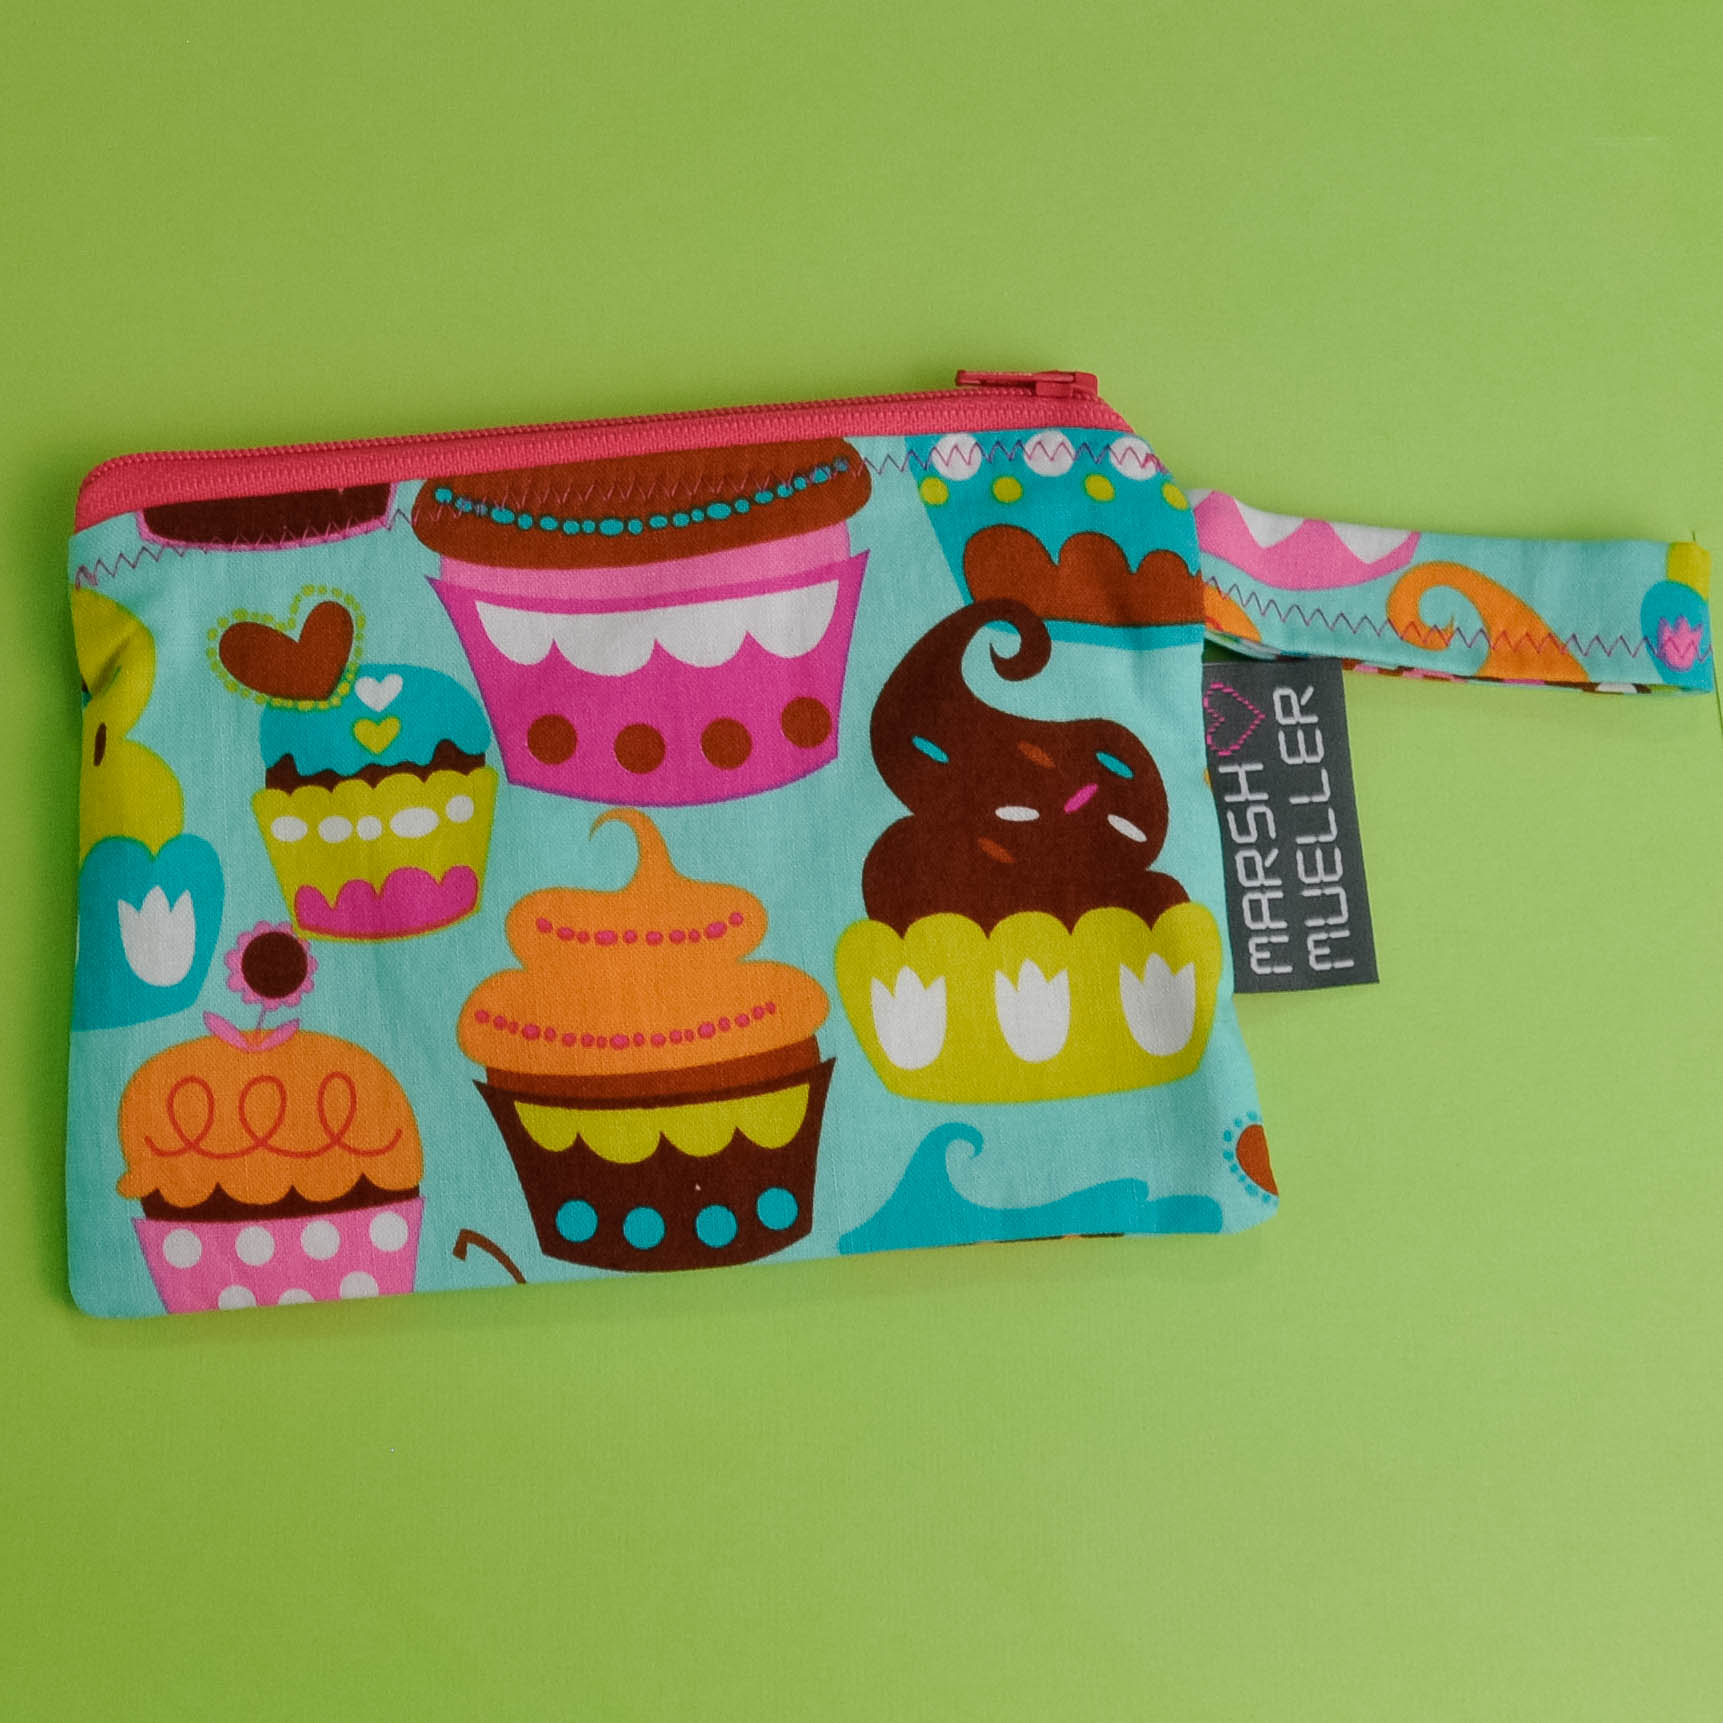 Sweet Cuppin' Cakes Reusable Snack Bag